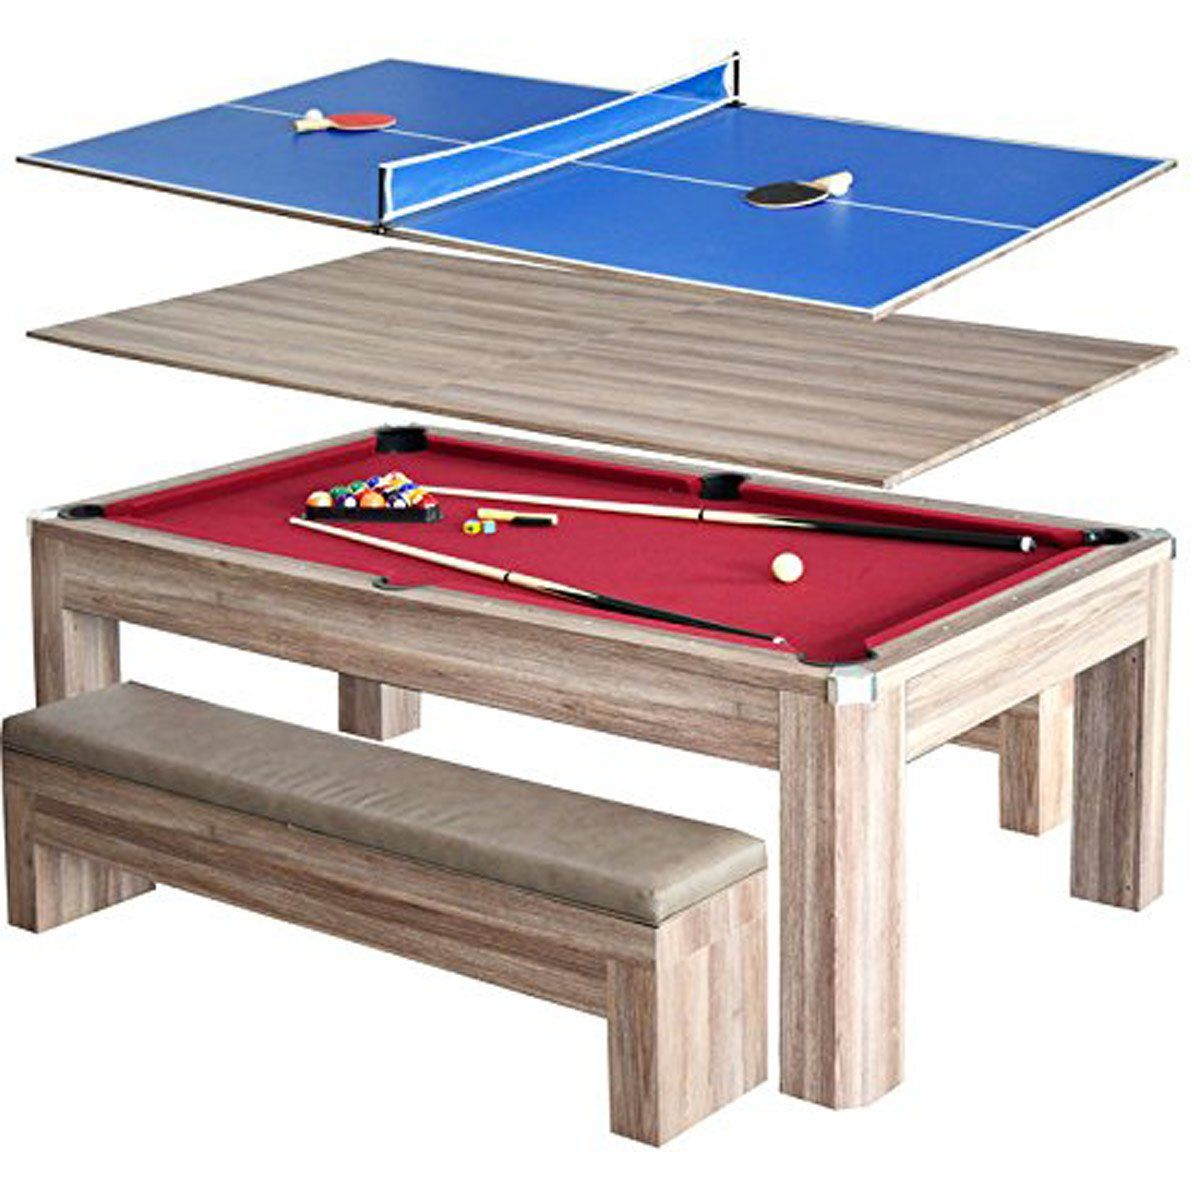 14 Picnic Tables You Have To See To Believe Pool Table Dining Table Pool Table Room Pool Table